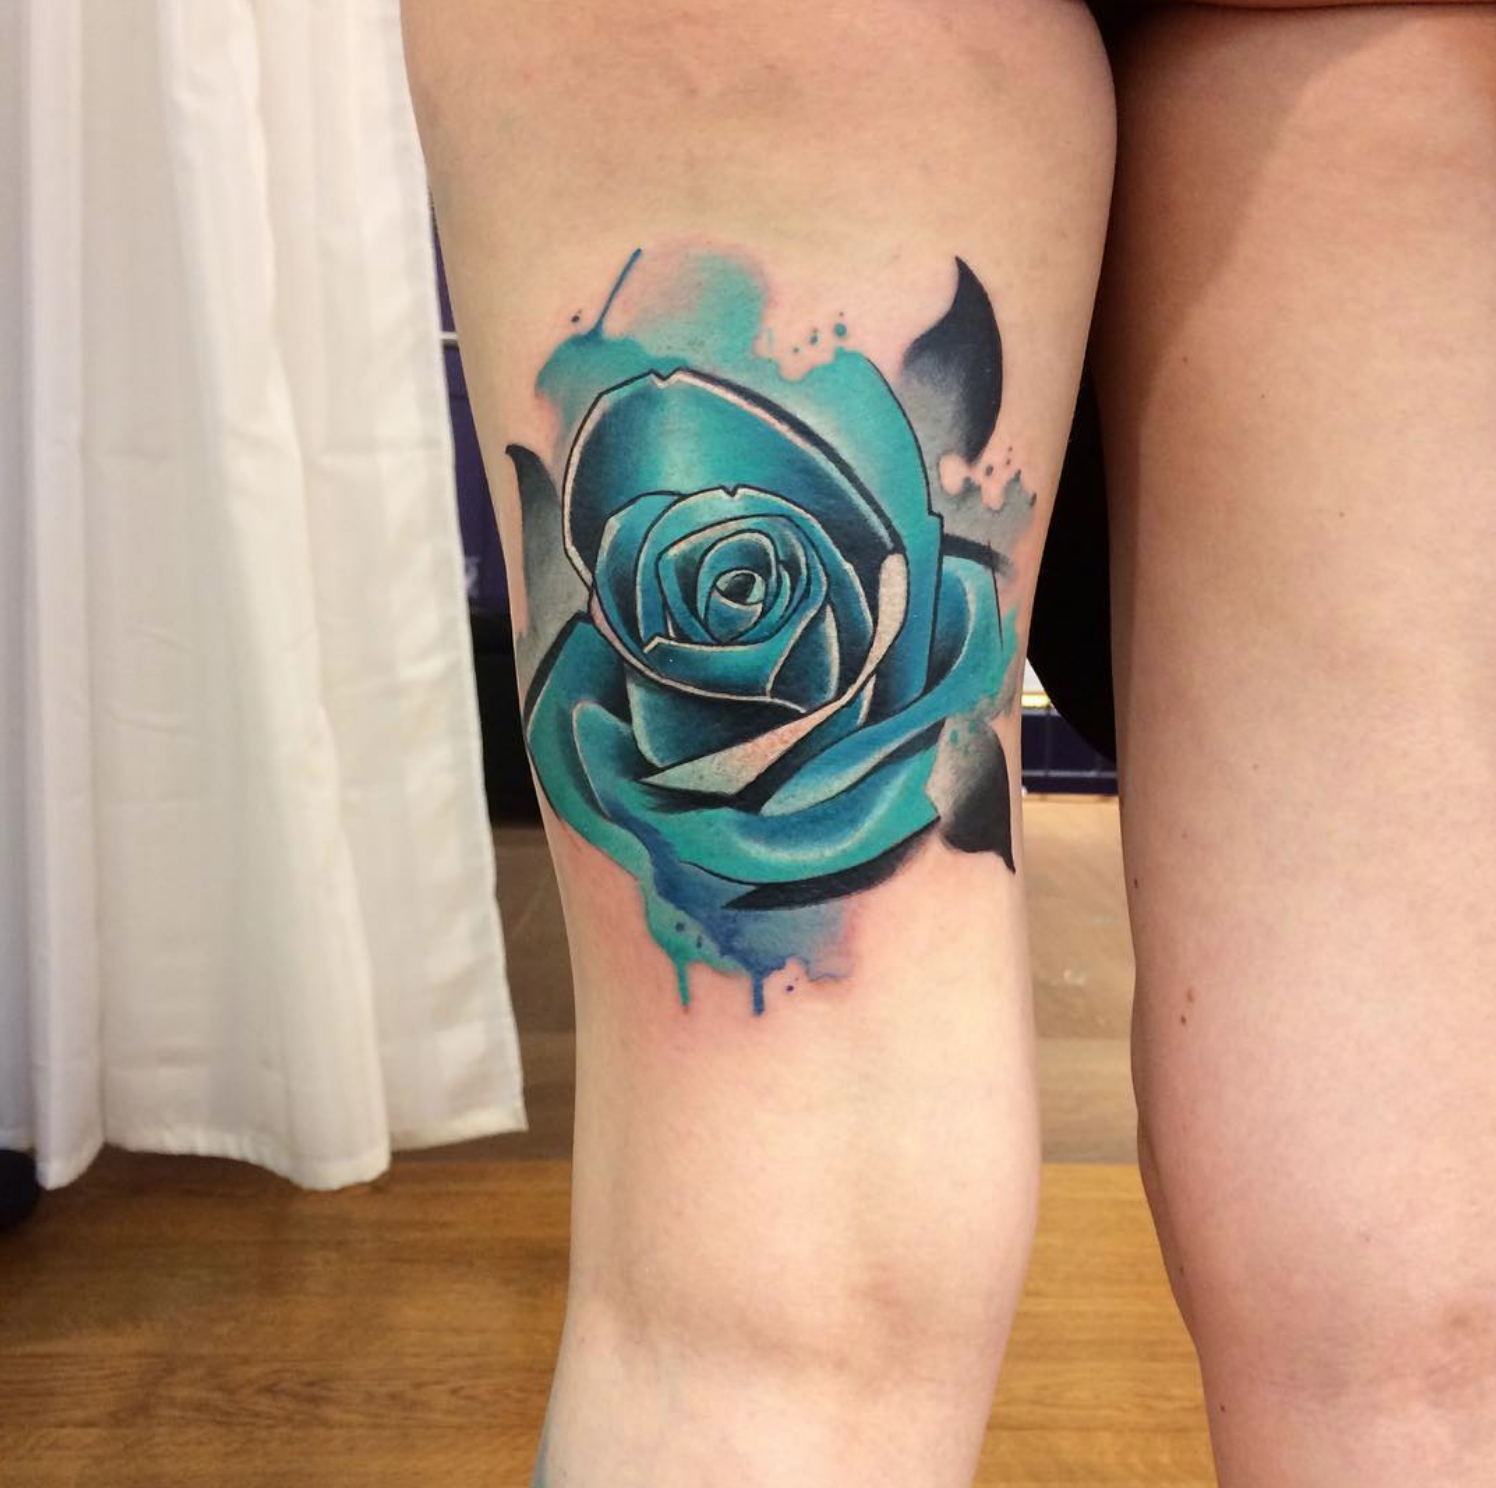 piink-tattoo-piercing-emil-tattoostudio-basel-rose